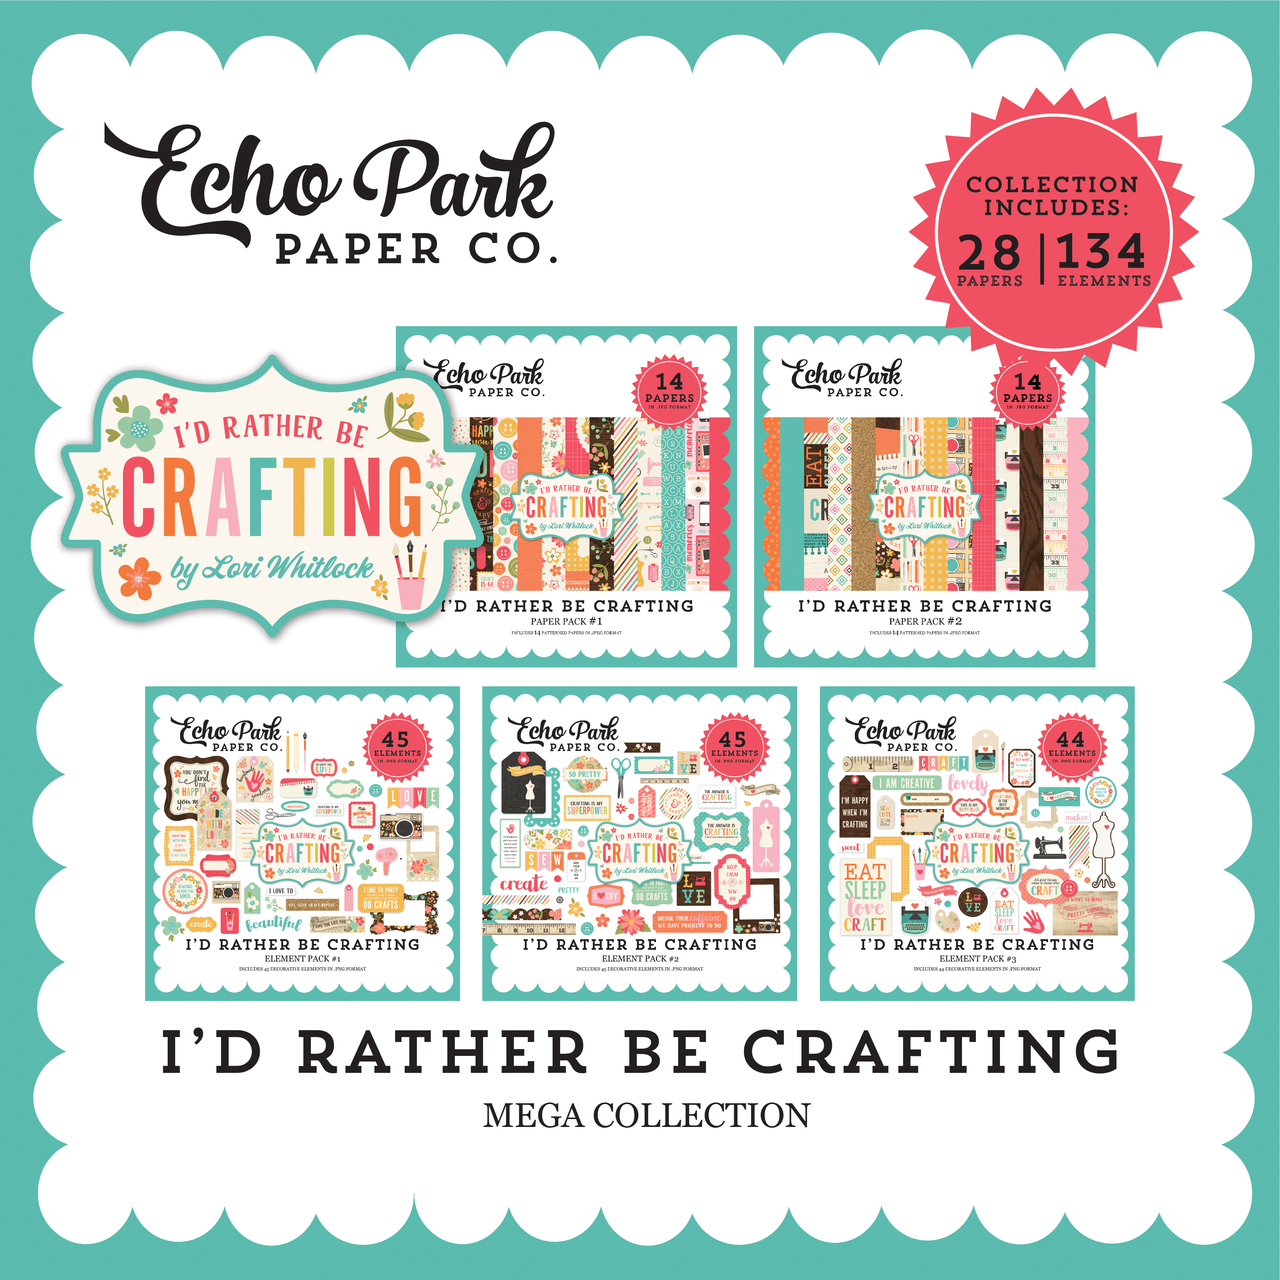 I'd Rather Be Crafting Mega Collection